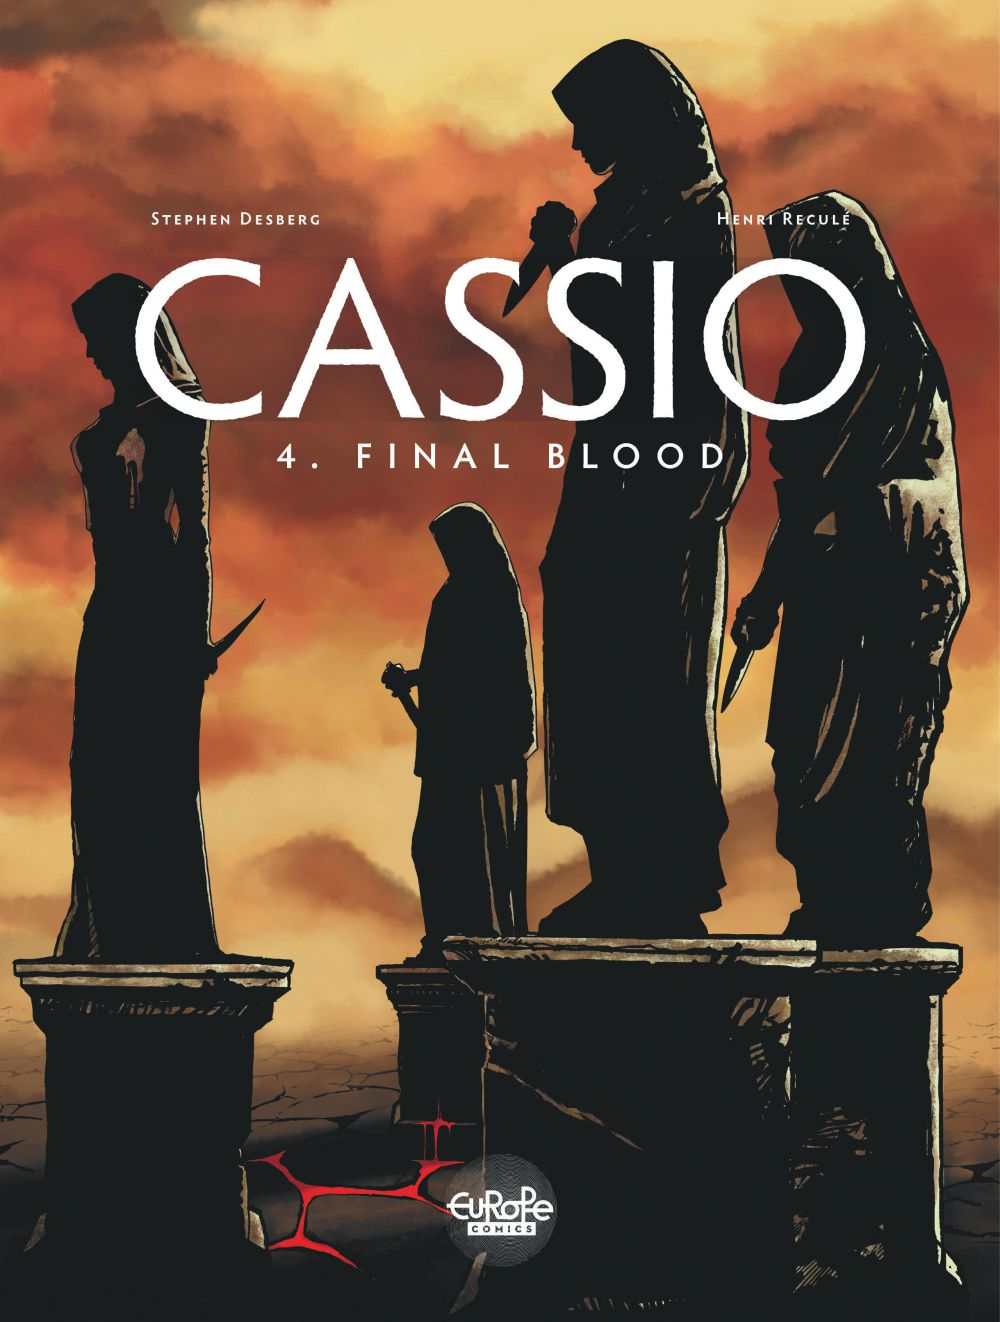 Cassio 4. Final Blood